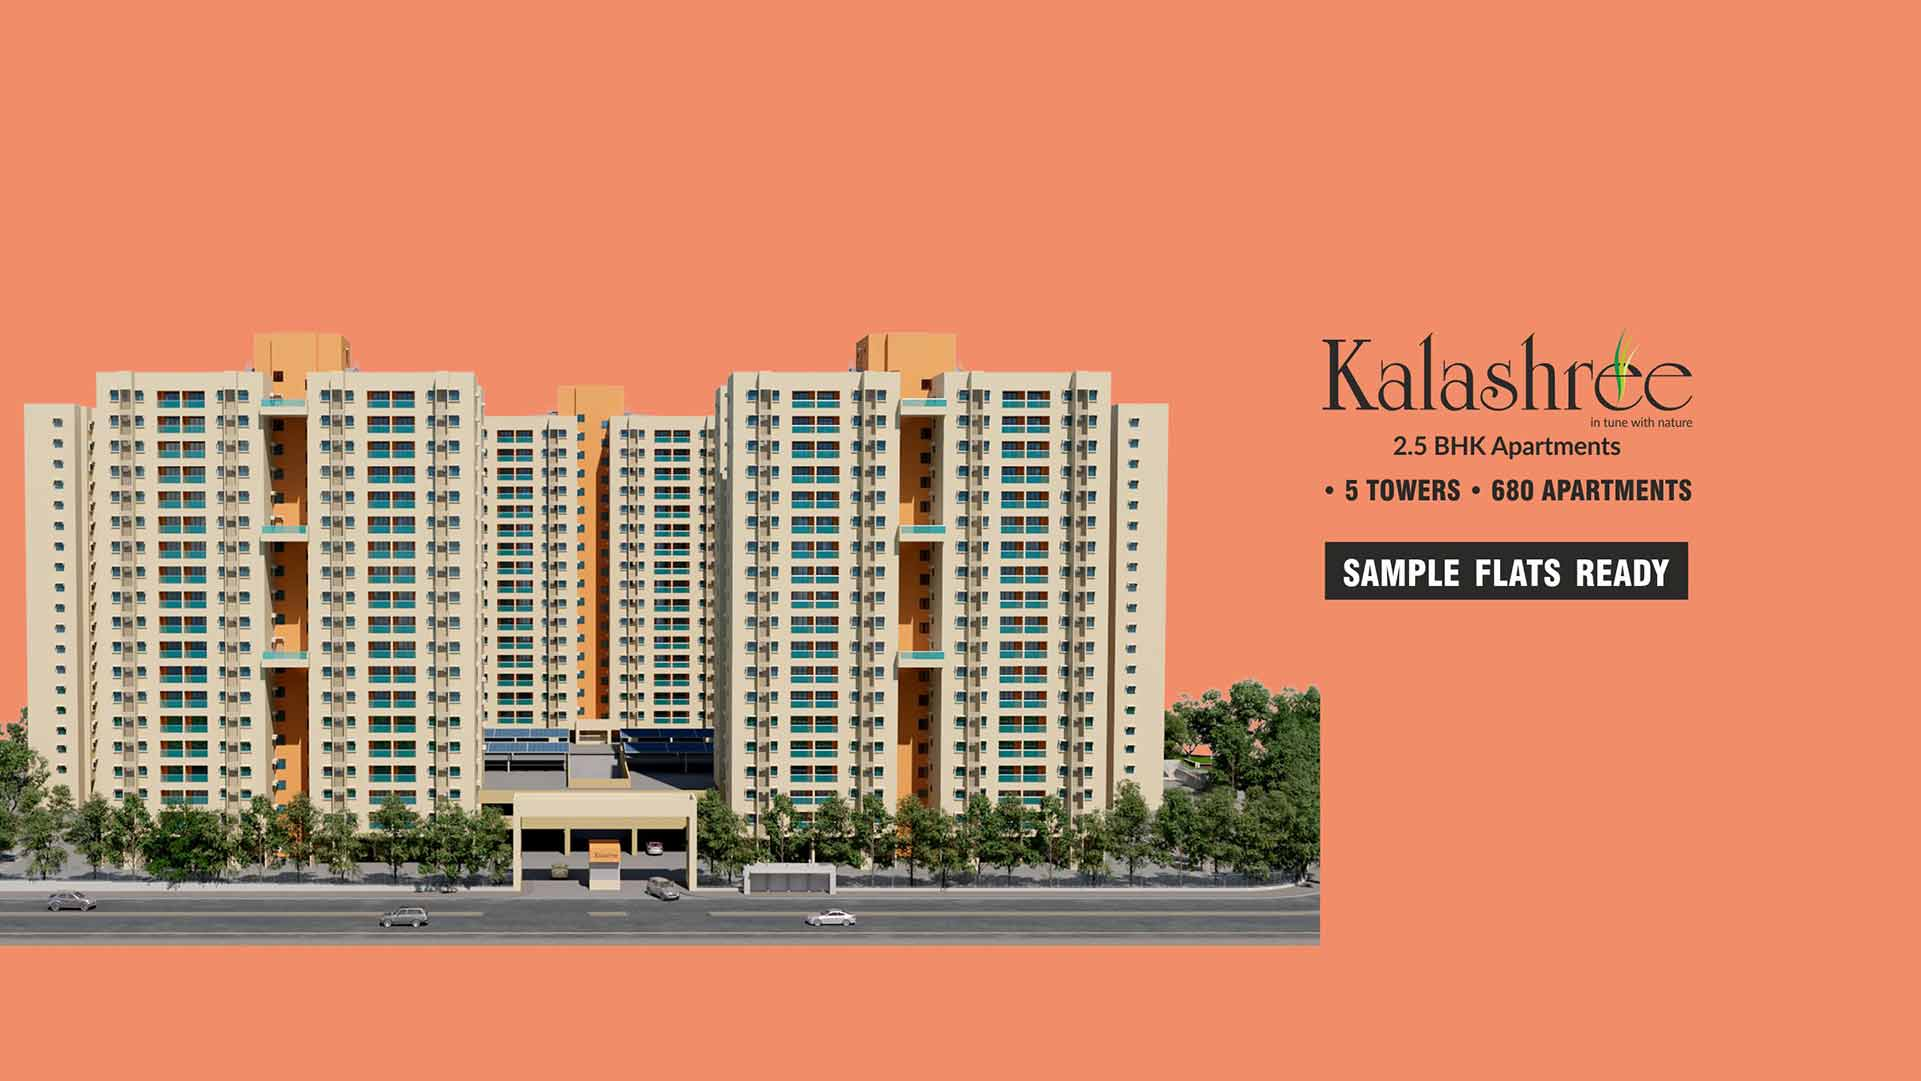 Bageshree-Kalashree launching two new Neighbourhoods